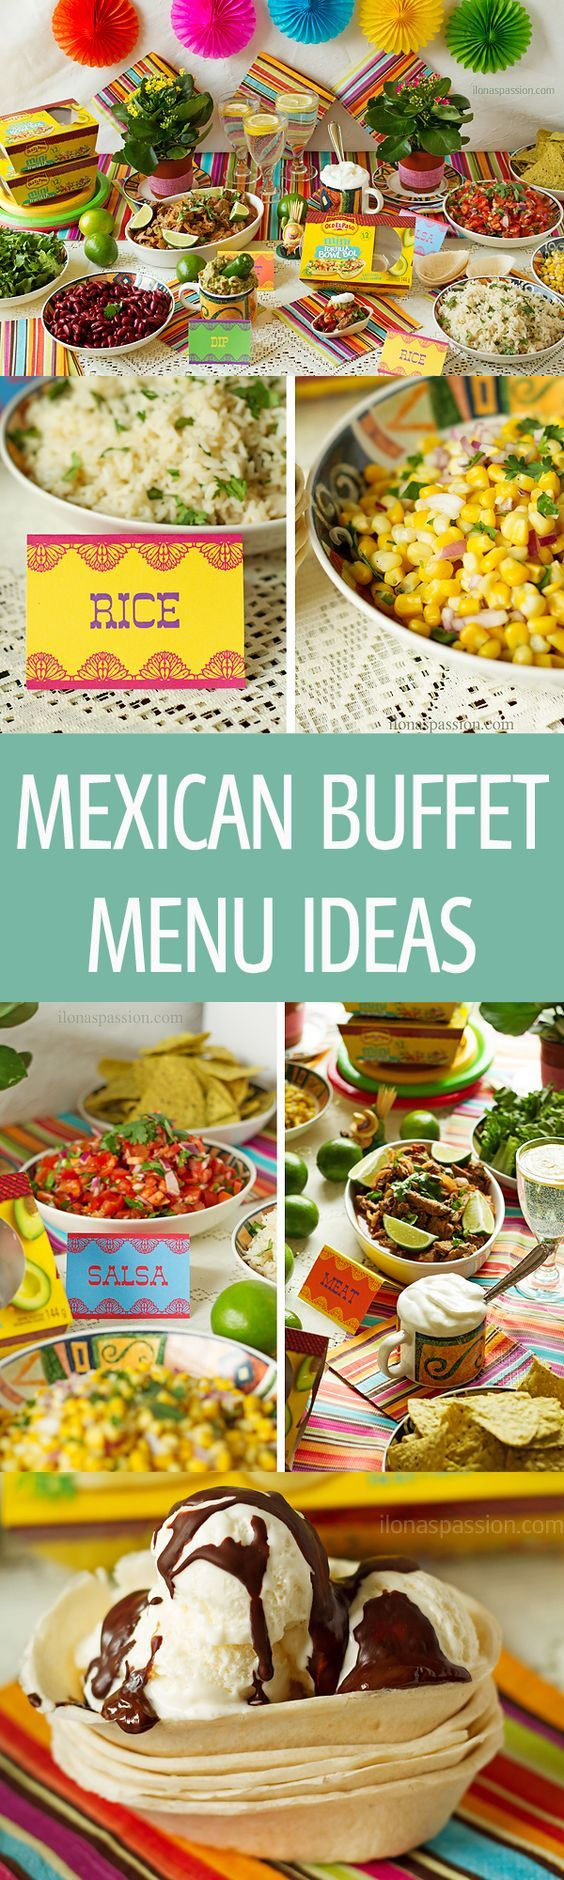 Mexican Buffet Menu Ideas - full Mexican buffet menu ideas with recipes like barbacoa, lime cilantro rice, avocado dip, beans, tortilla bowls, corn and homemade salsa. Free Mexican printable table tents included! by ilonaspassion.com I @ilonaspassion #CreateYourBowl #ad